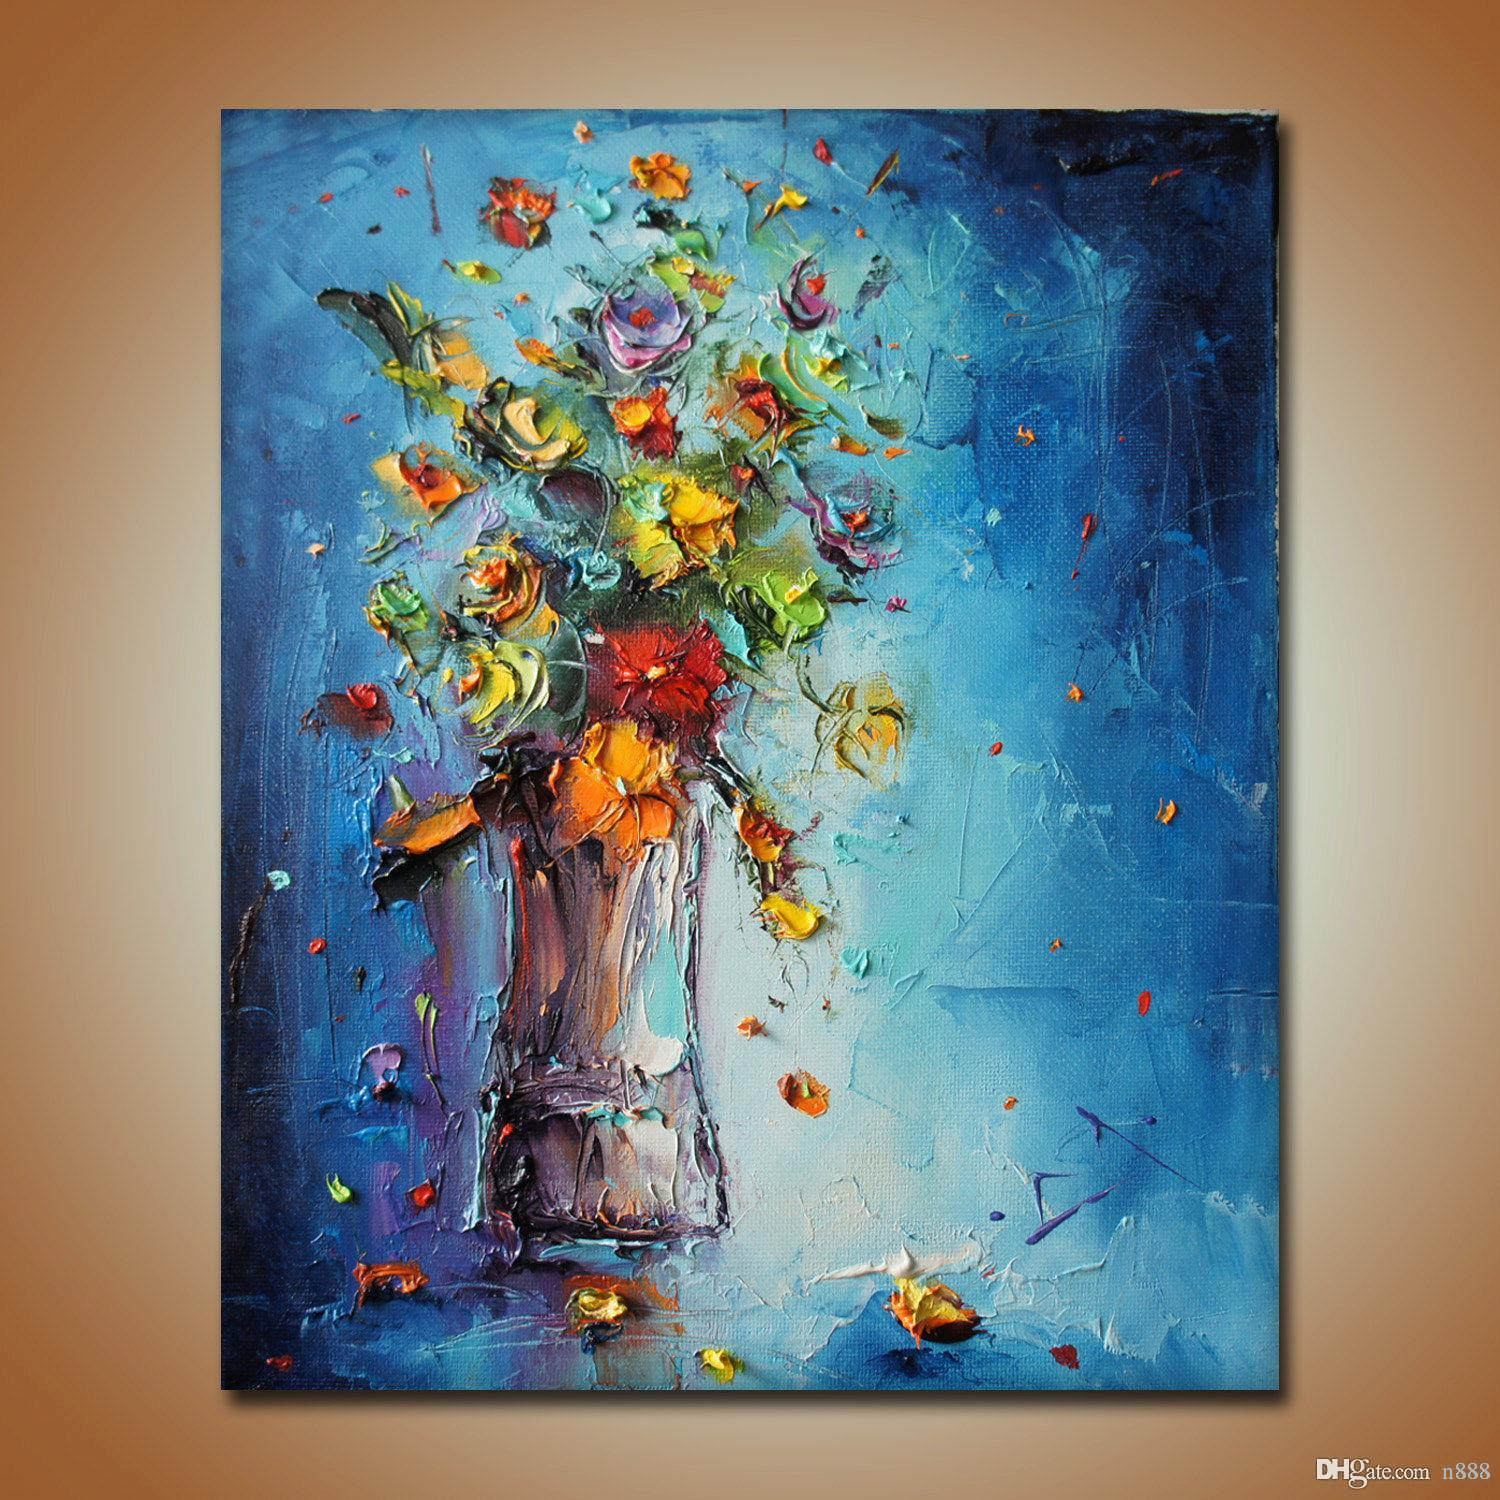 Modern Abstract Hand-Painted & HD Canvas Print Art Oil Painting Flower,Home Wall Decor on High quality Thick canvas Multi Sizes f01